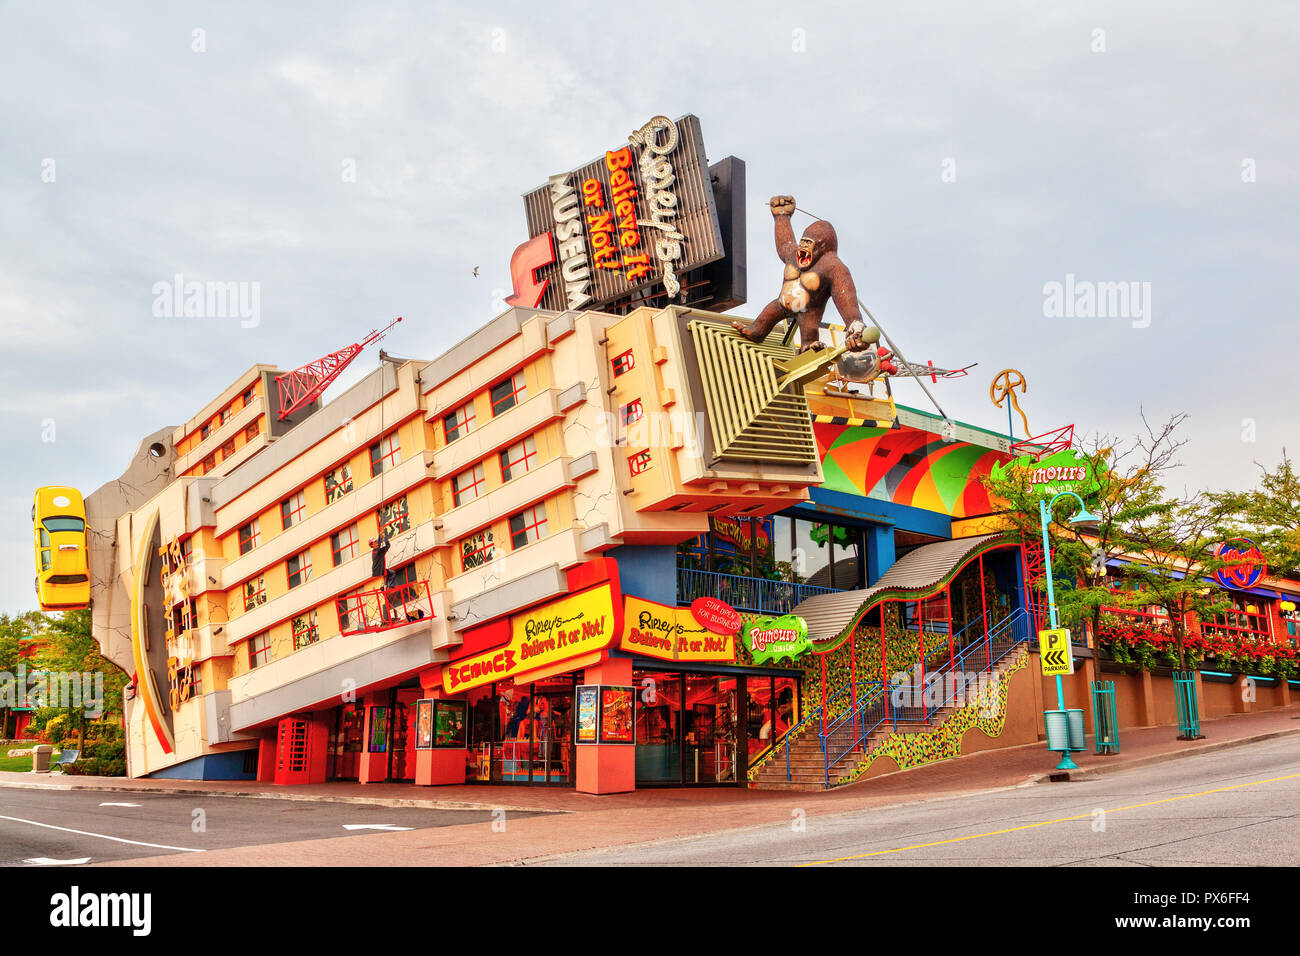 NIAGARA FALLS, CANADA - AUG 27, 2012: Ripley's Believe It or Not! building, an oddity museum located in the heart of Niagara Falls on Clifton Hill, On - Stock Image